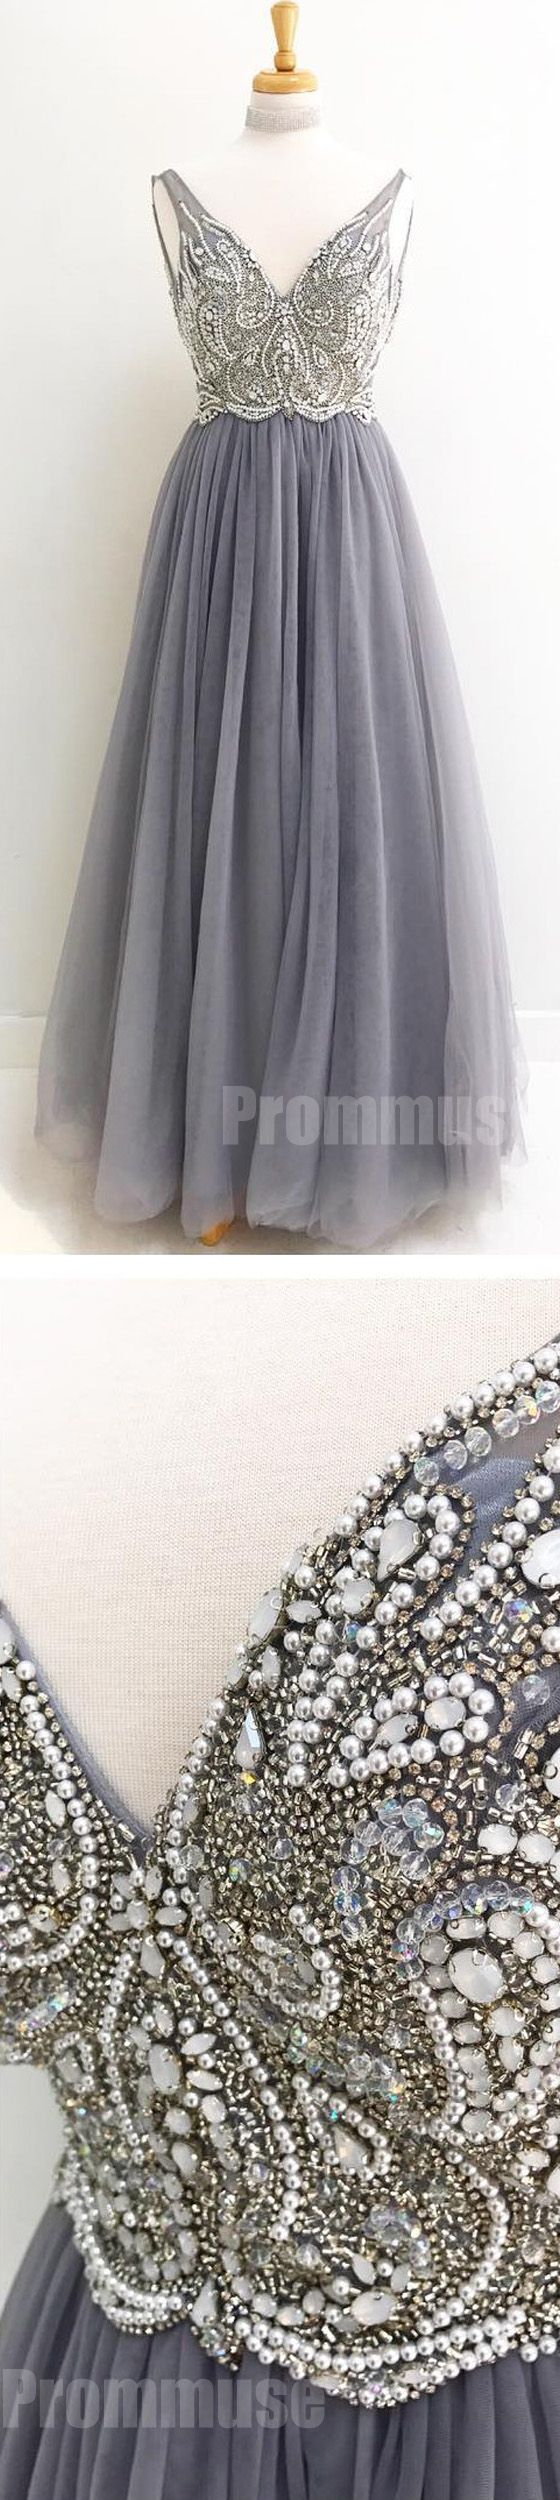 Charming V Neck Beaded Tulle Inexpensive Long Prom Dresses, PM0791 #promdress